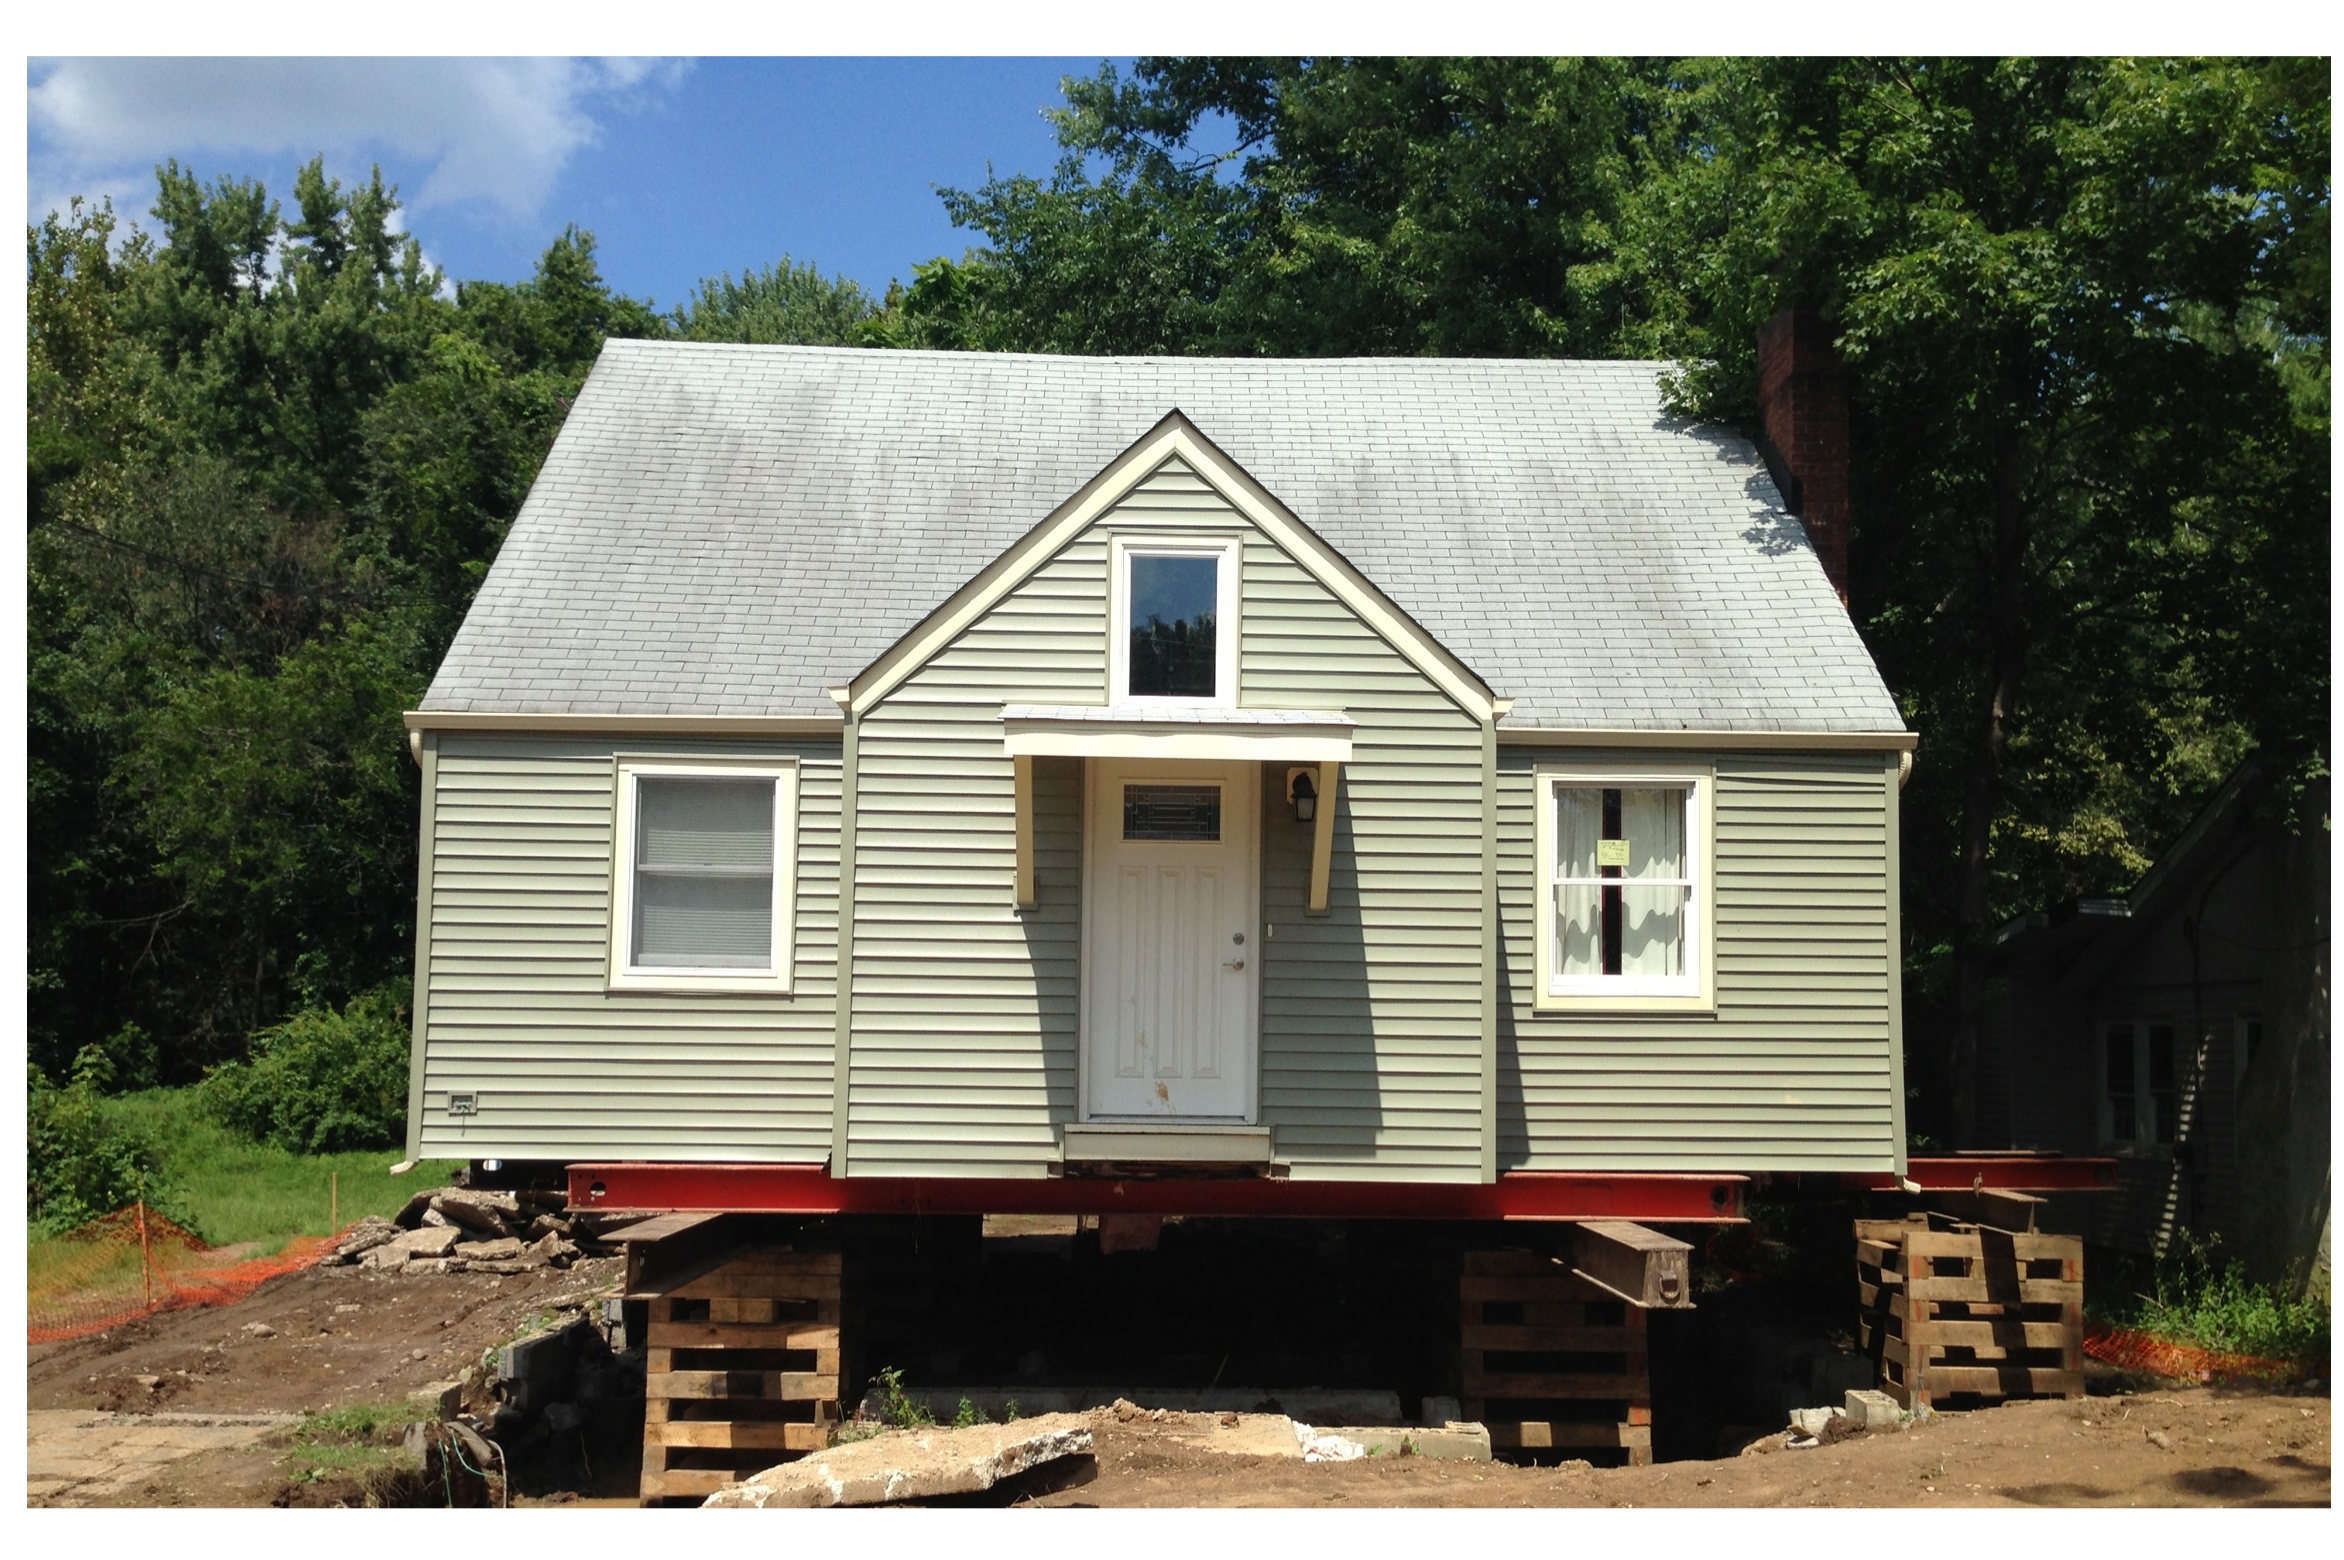 Raising a house from hurricane flooding in New Jersey